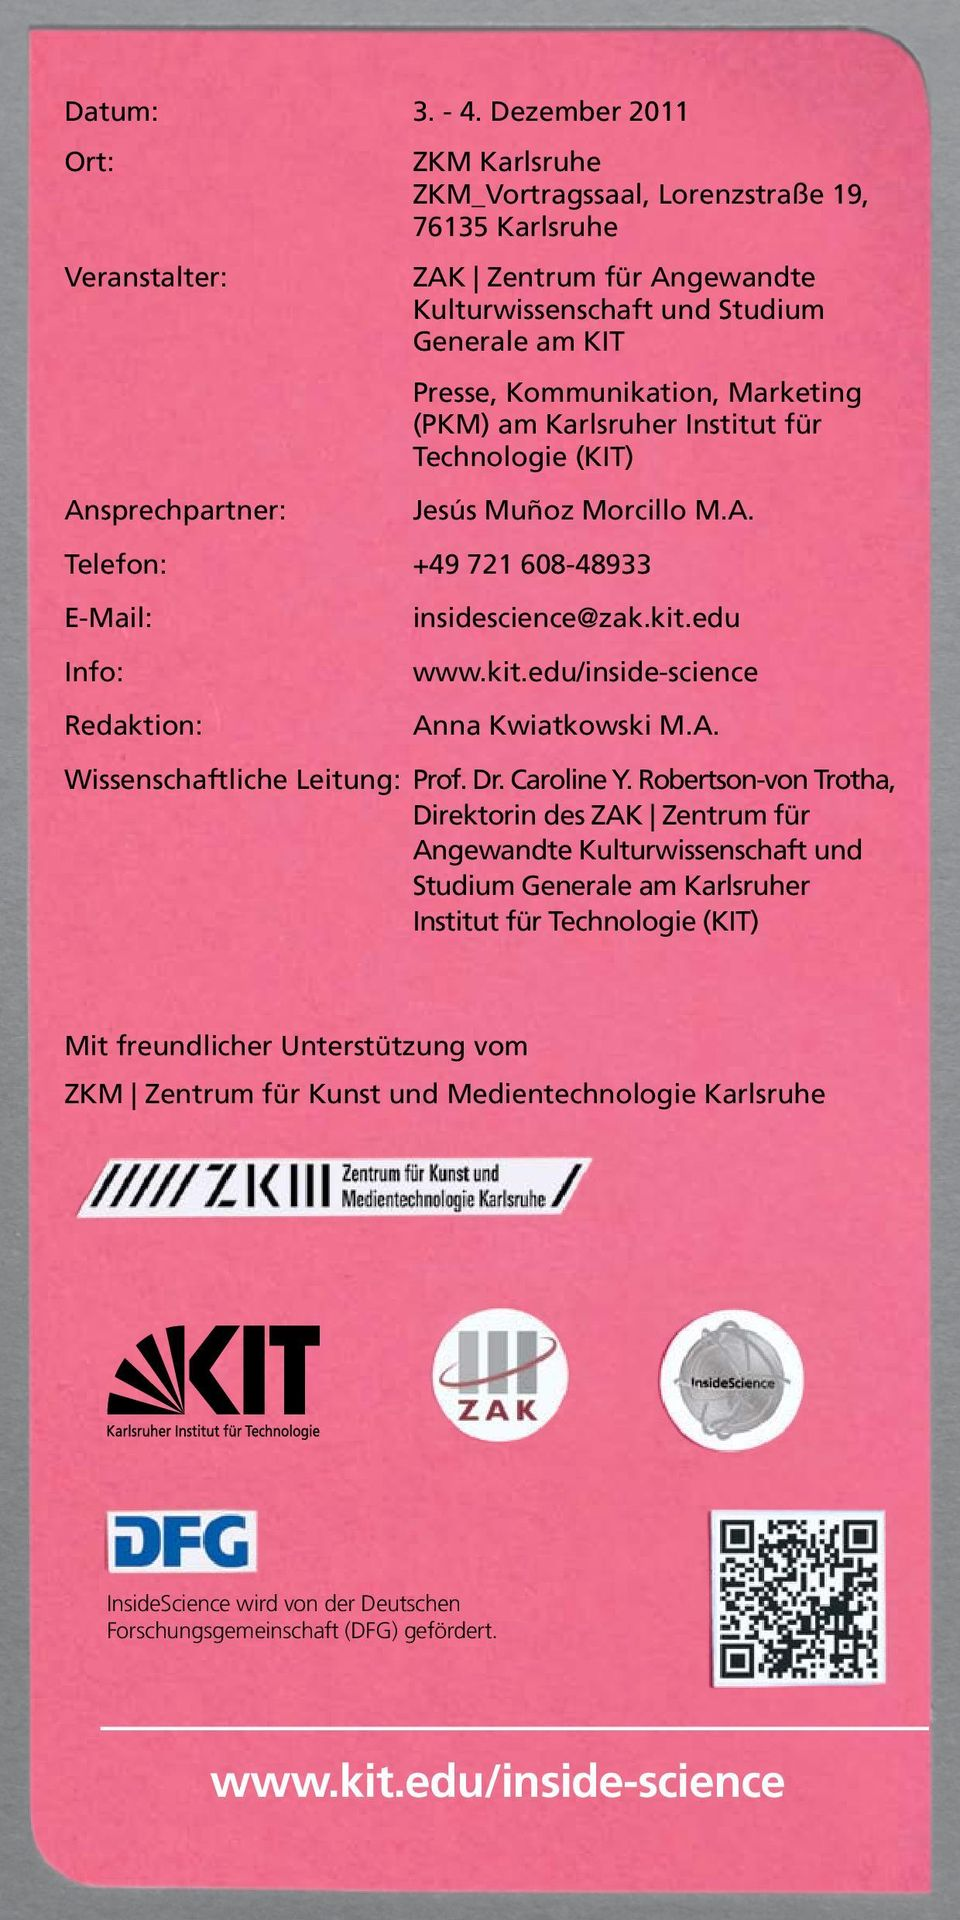 Kommunikation, Marketing (PKM) am Karlsruher Institut für Technologie (KIT) Jesús Muñoz Morcillo M.A. Telefon: +49 721 608-48933 E-Mail: Info: Redaktion: insidescience@zak.kit.